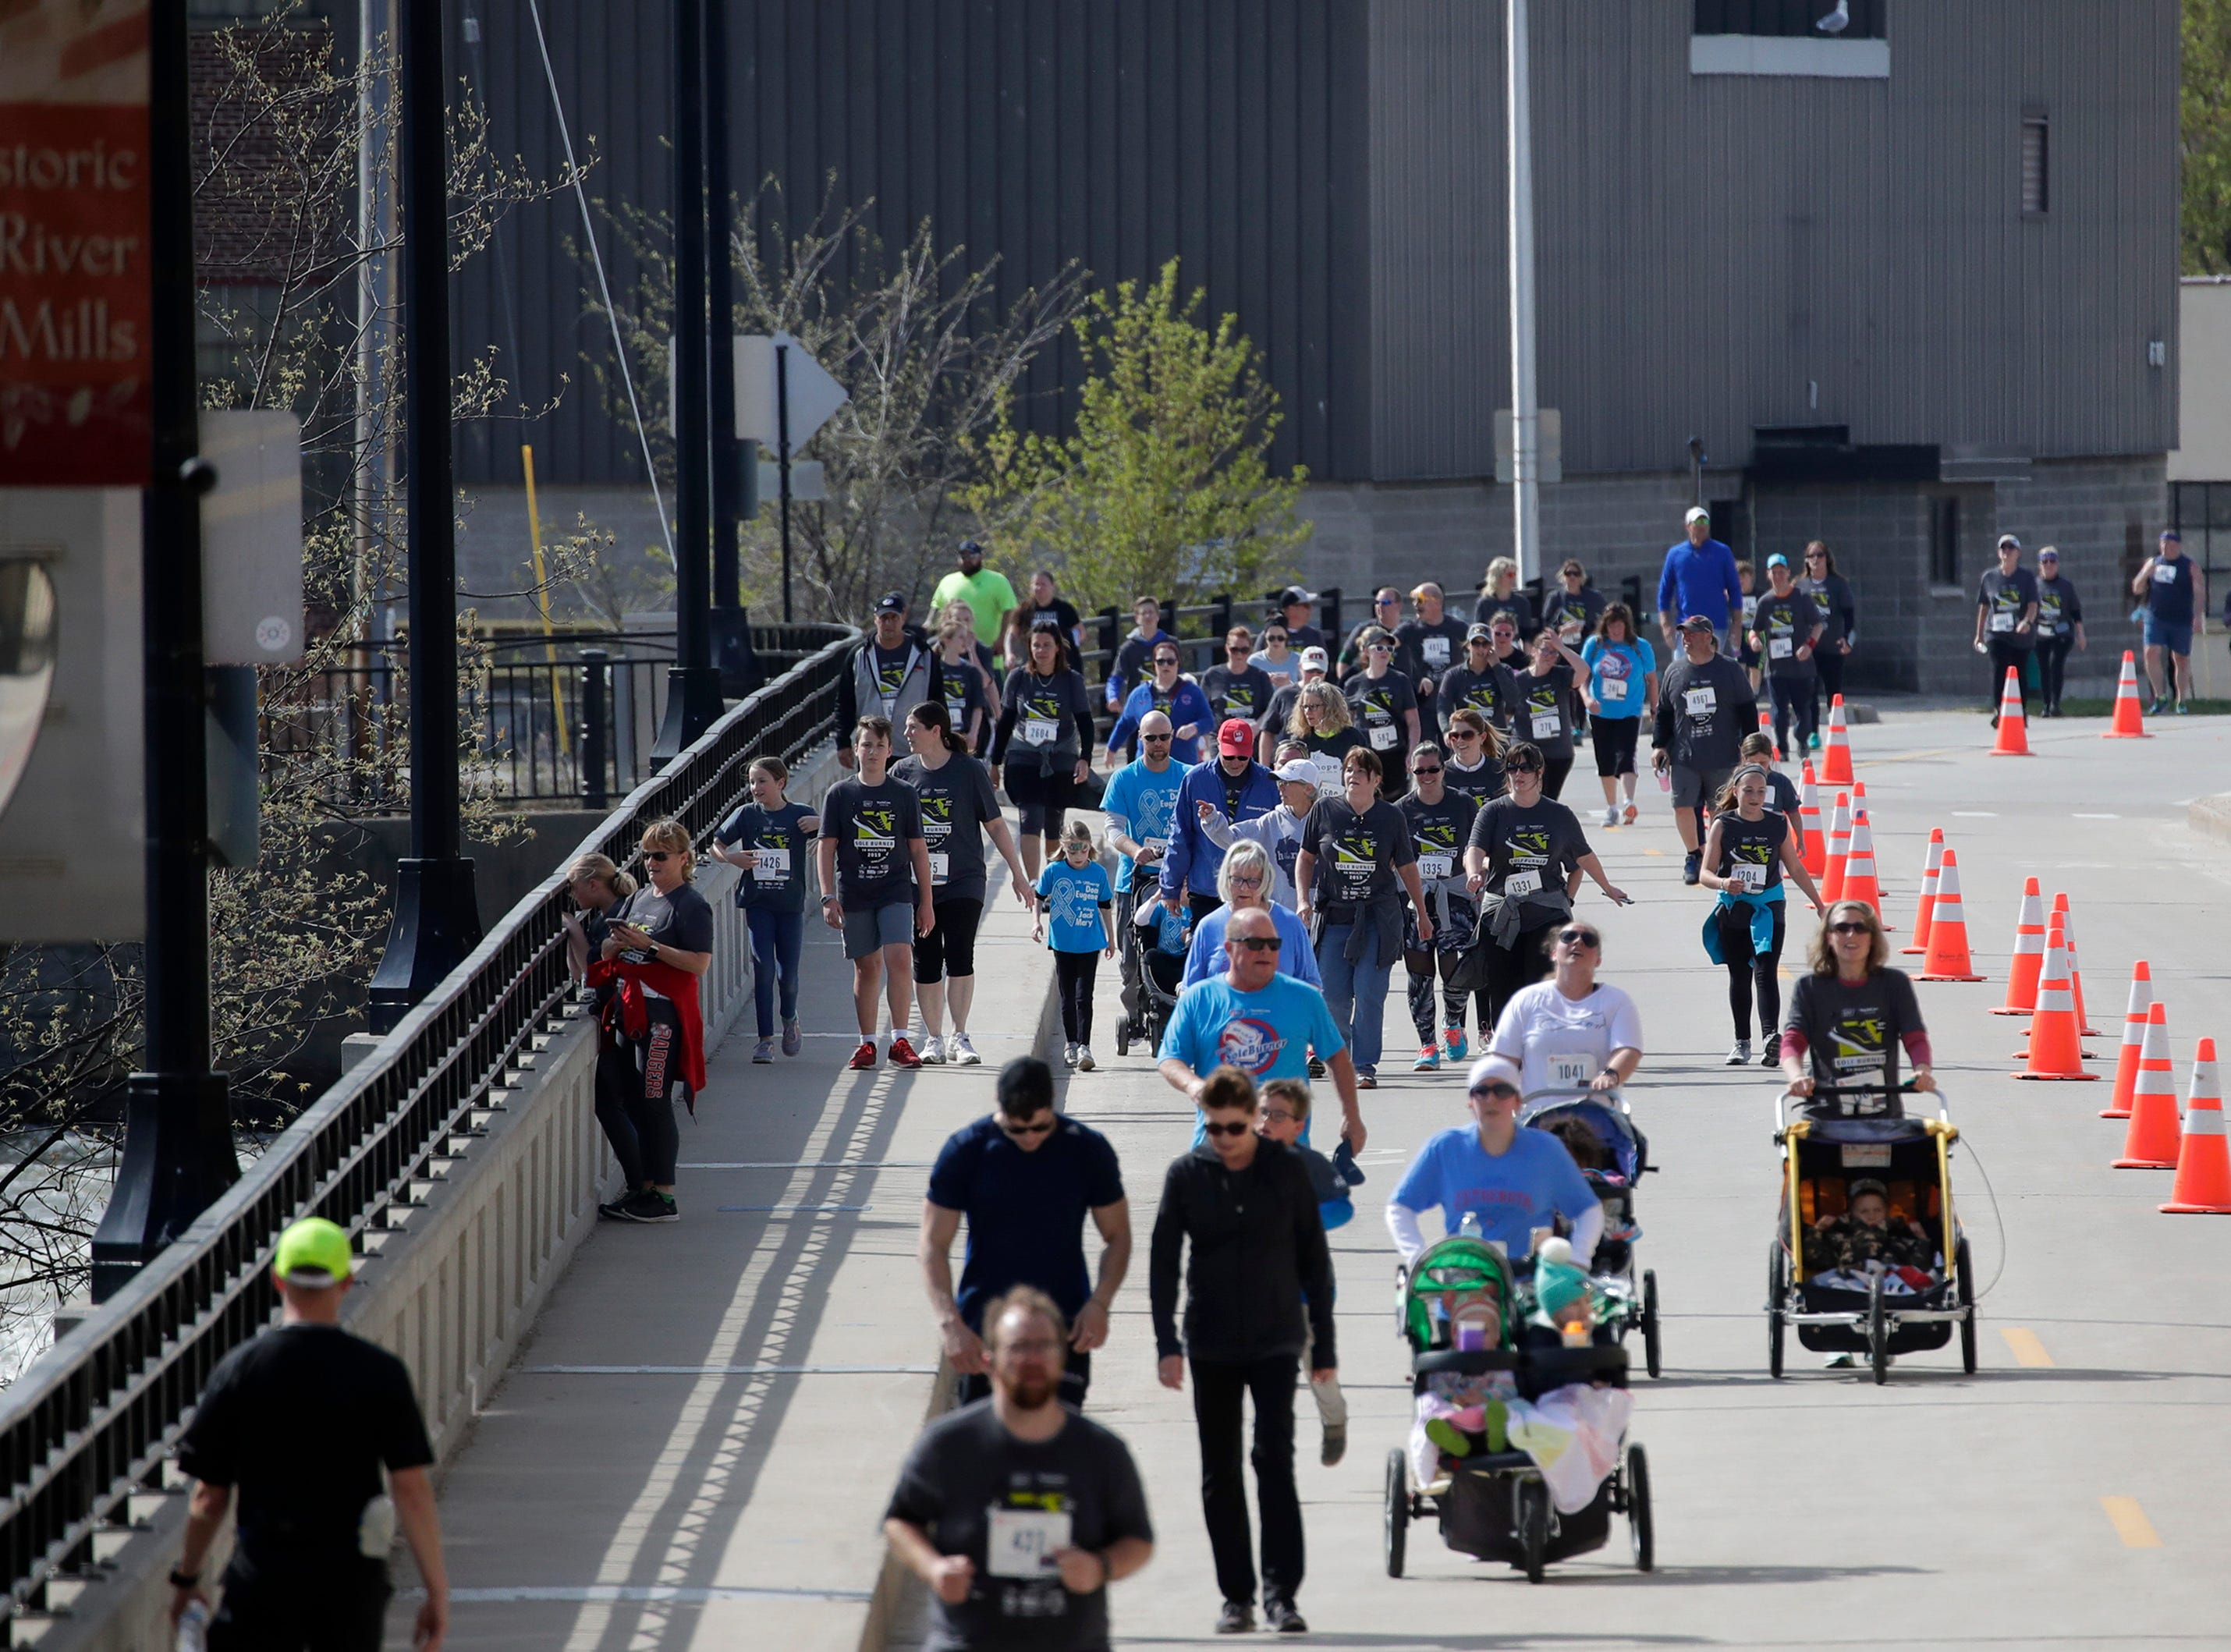 Participants in the Sole Burner 5K Walk-Run make their way across the Olde Oneida Street Bridge Saturday, May 11, 2019, in Appleton, Wis. Danny Damiani/USA TODAY NETWORK-Wisconsin